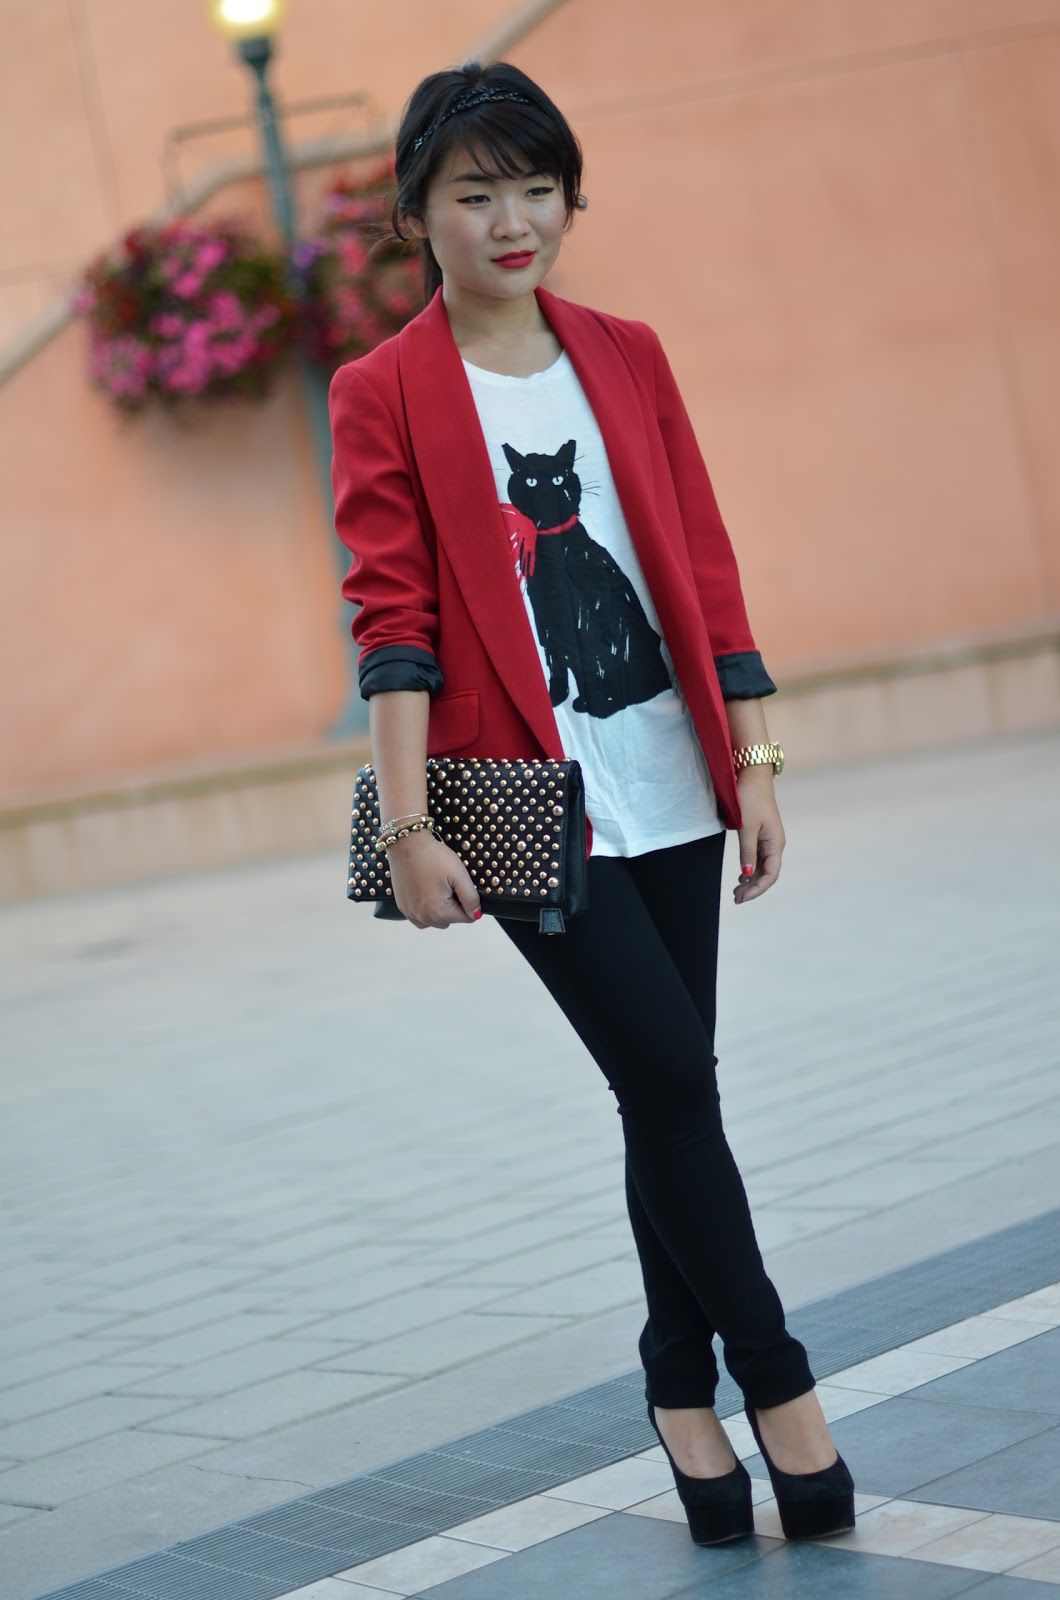 forever 21 red blazer, jason wu for target cat shirt, jason wu for target milu shirt, jason wu for target black cat, citizens of humanity black skinny stretch leggings axle wash, citizens of humanity black stretch jeans, citizens of humanity axle wash, sam edelman quinn, forever 21 black studded clutchn